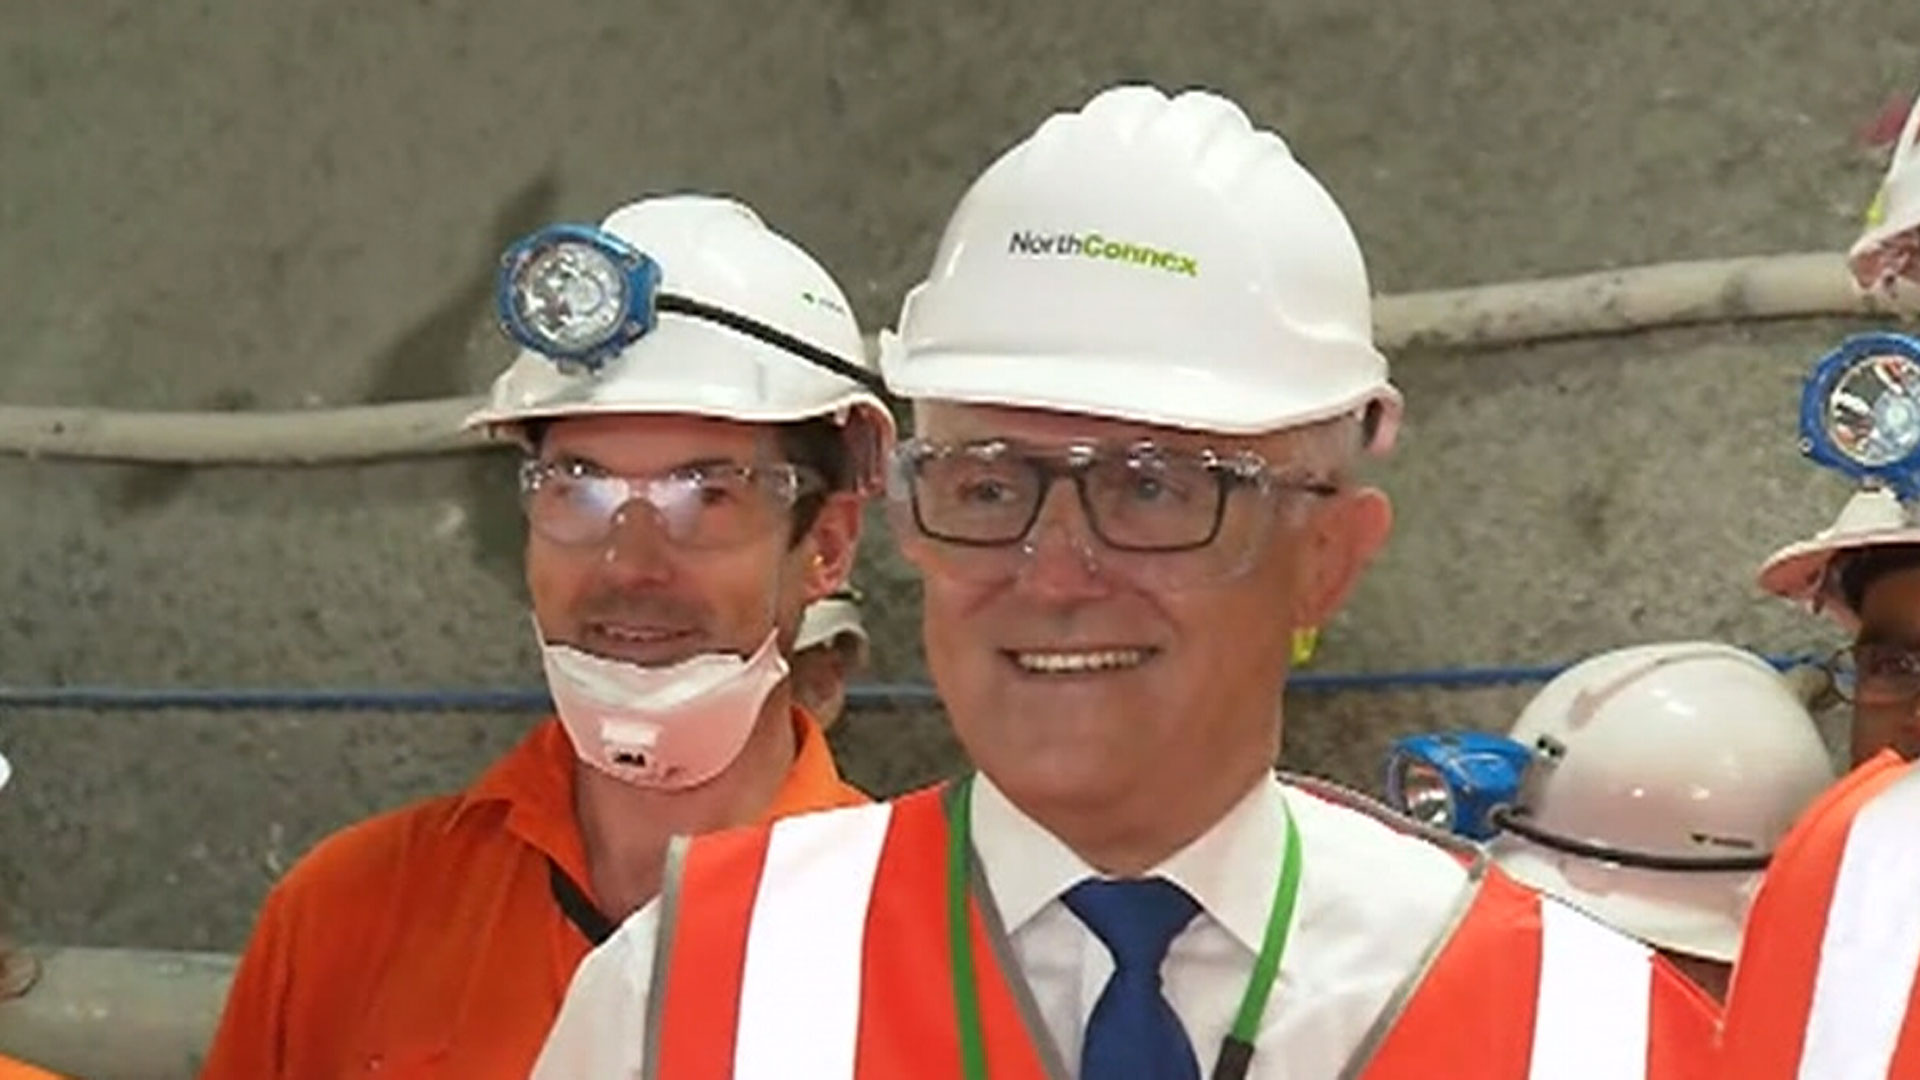 Turnbull campaigning hard in Sydney's Bennelong